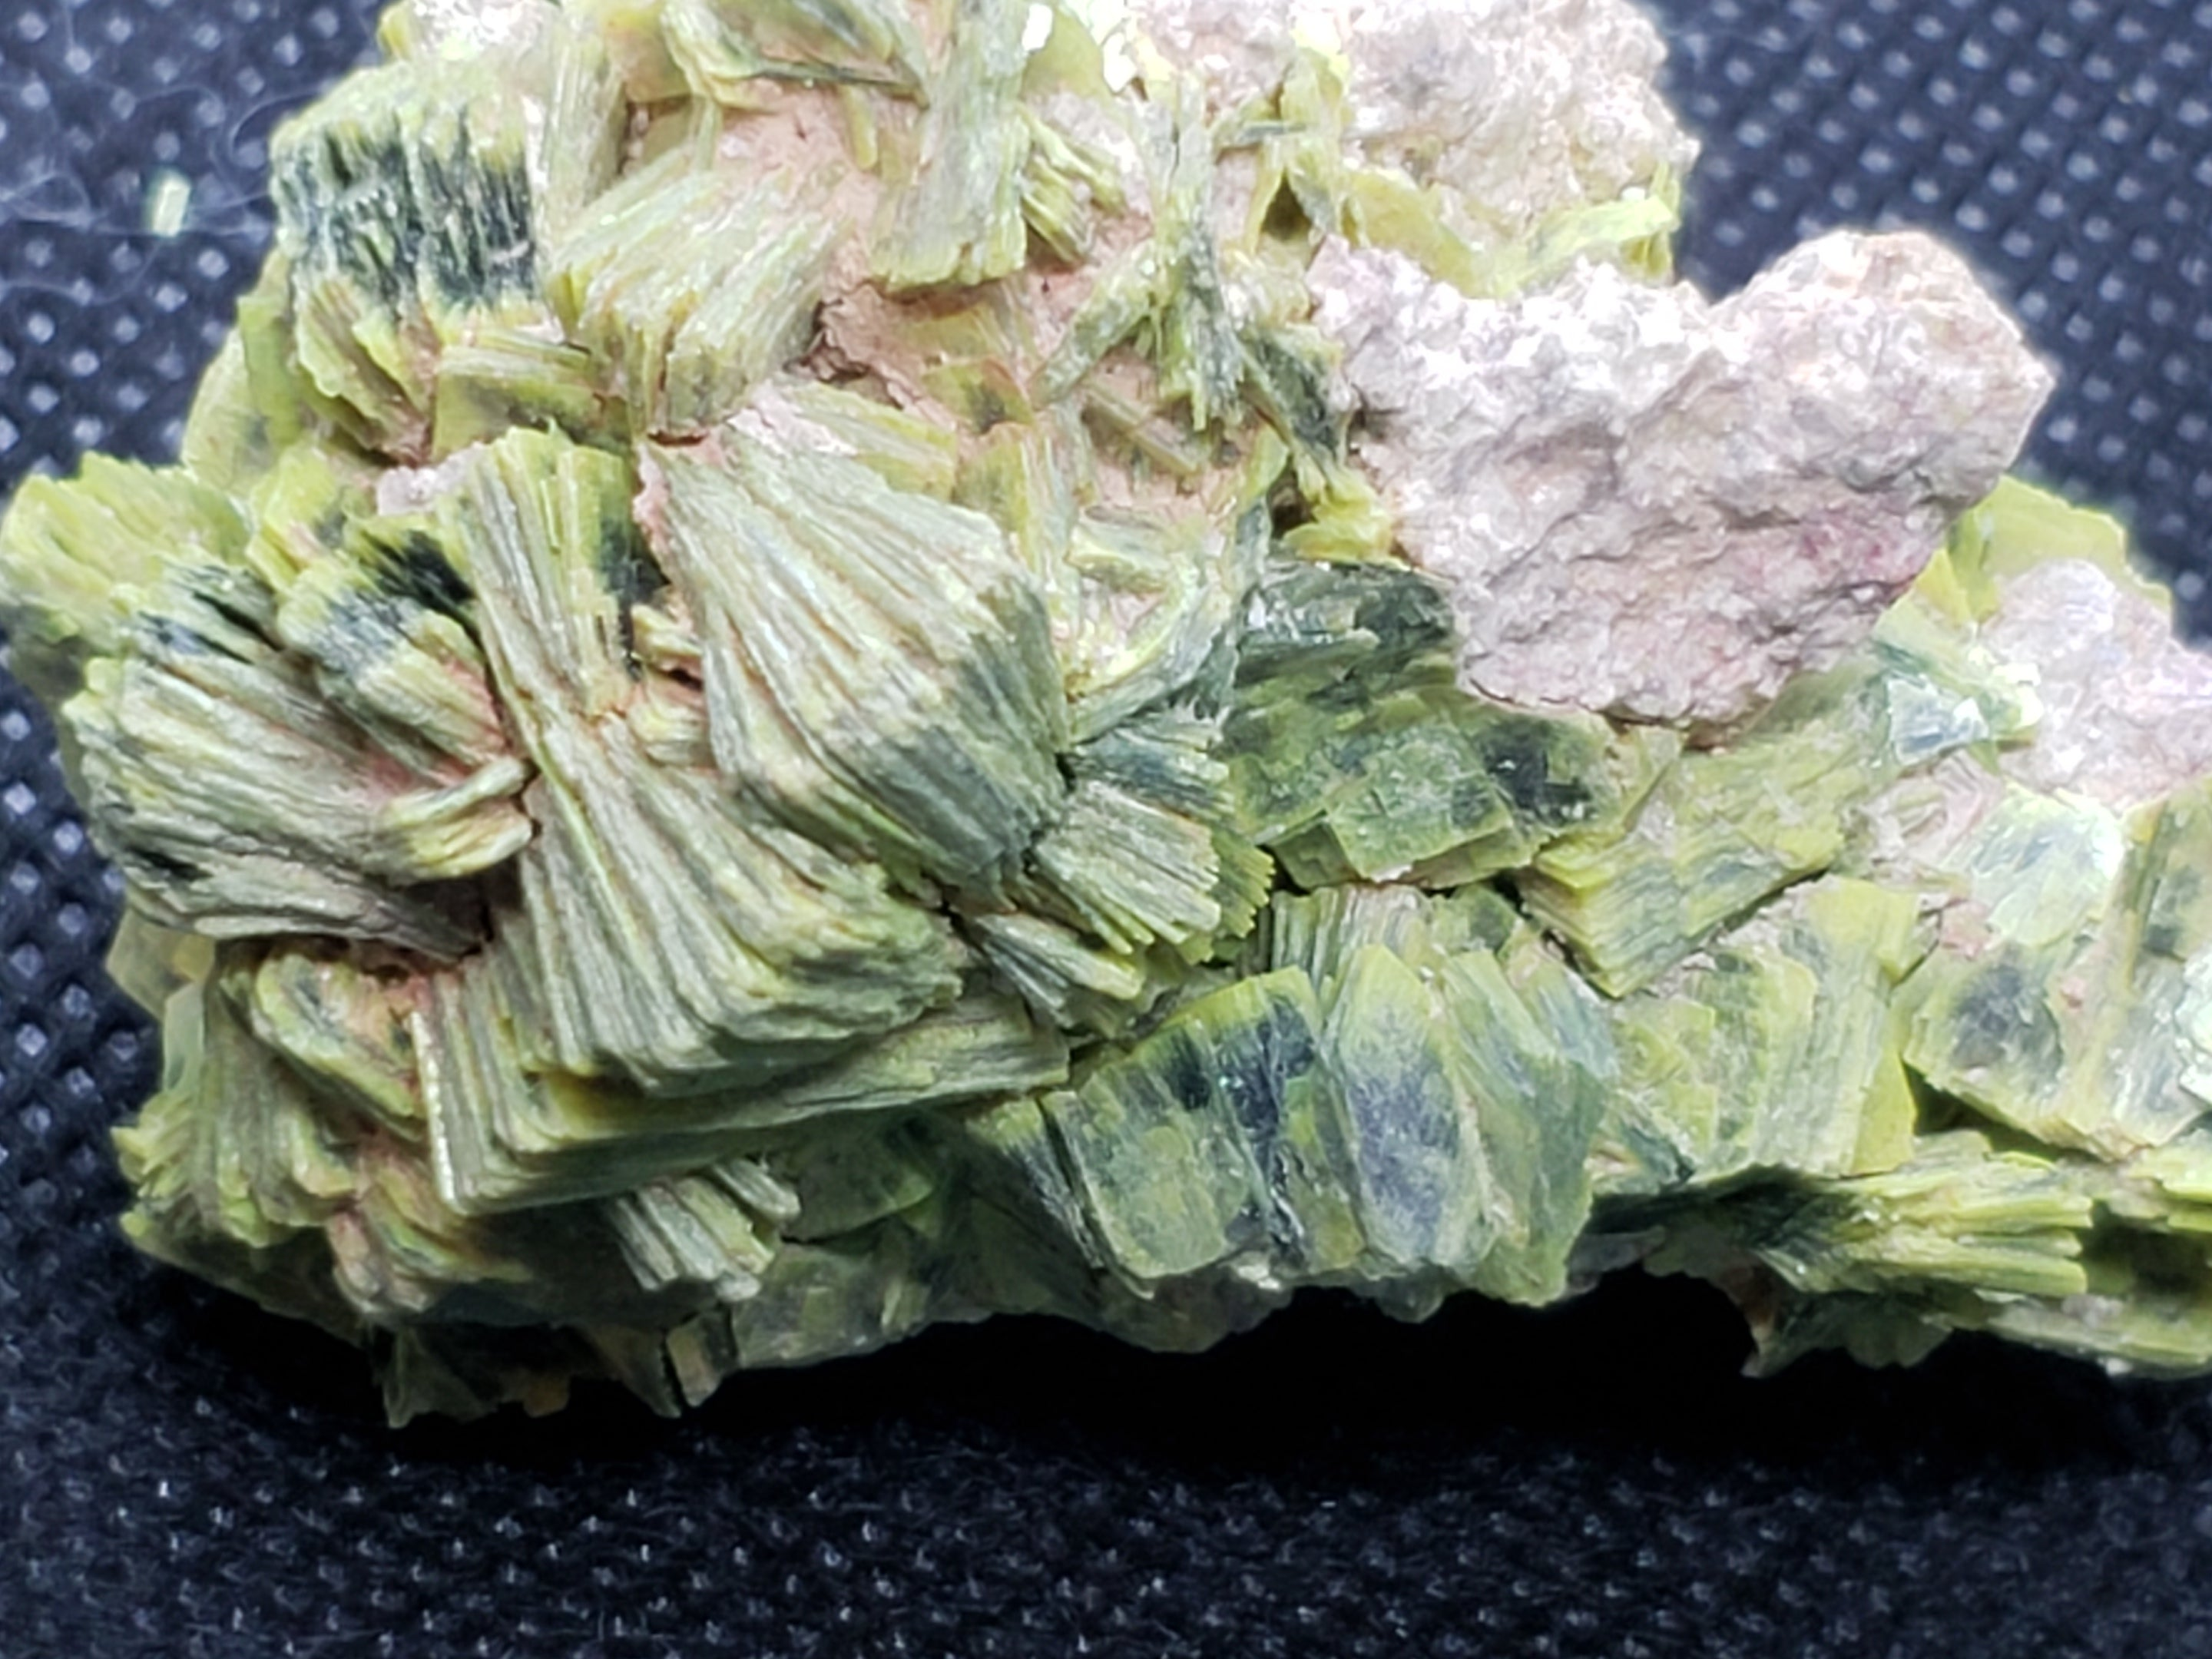 Autunite crystals